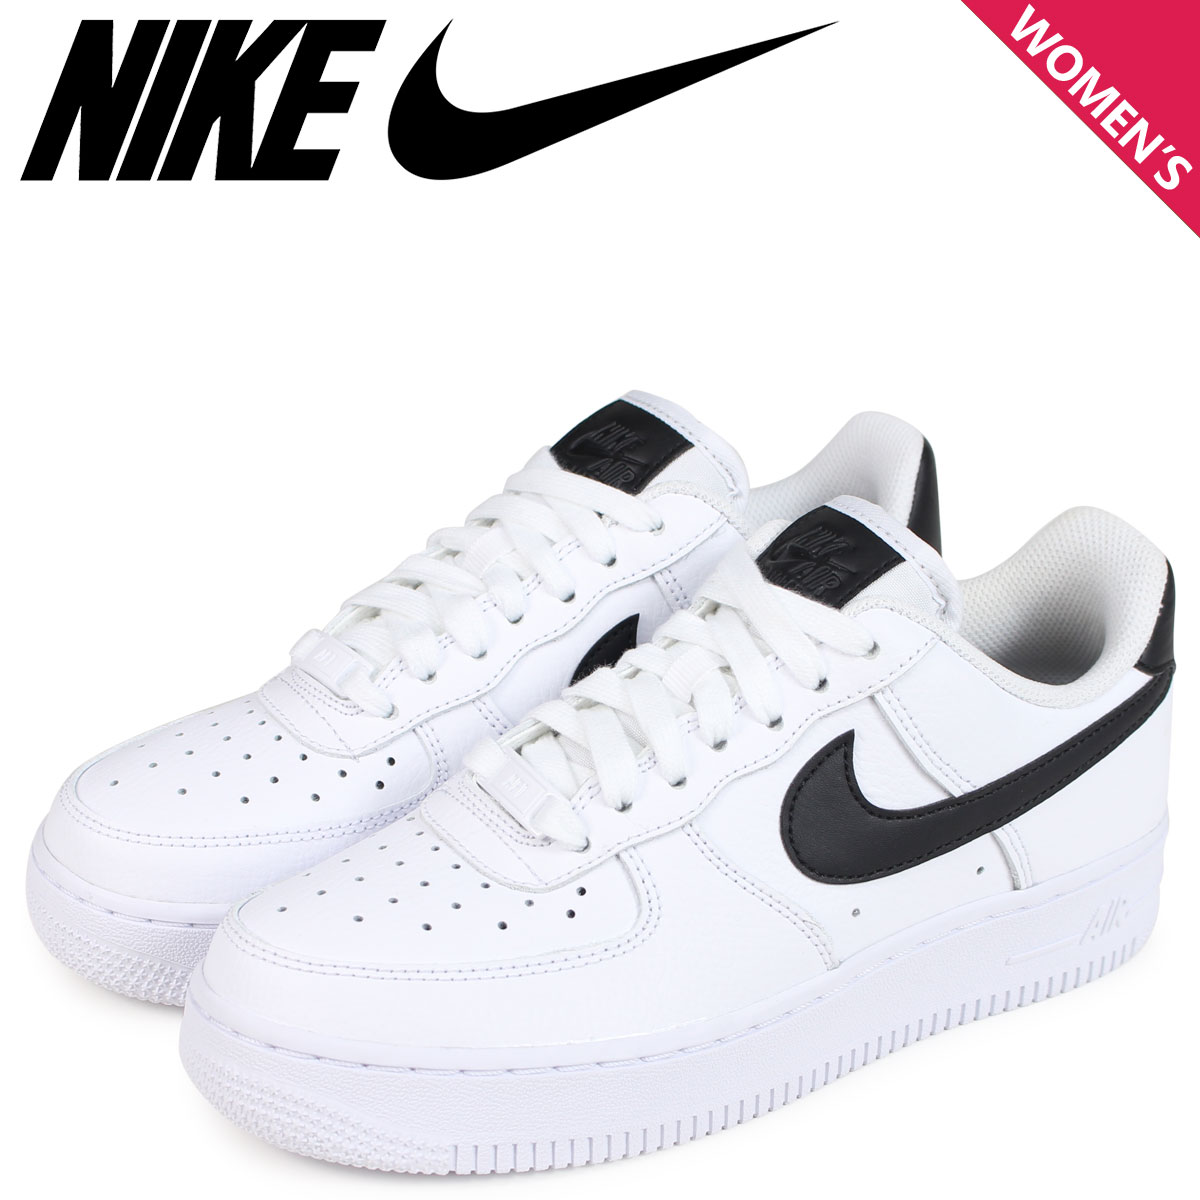 new product 4688c 3012e  brand NIKE getting high popularity from sneakers freak . Constant seller  model